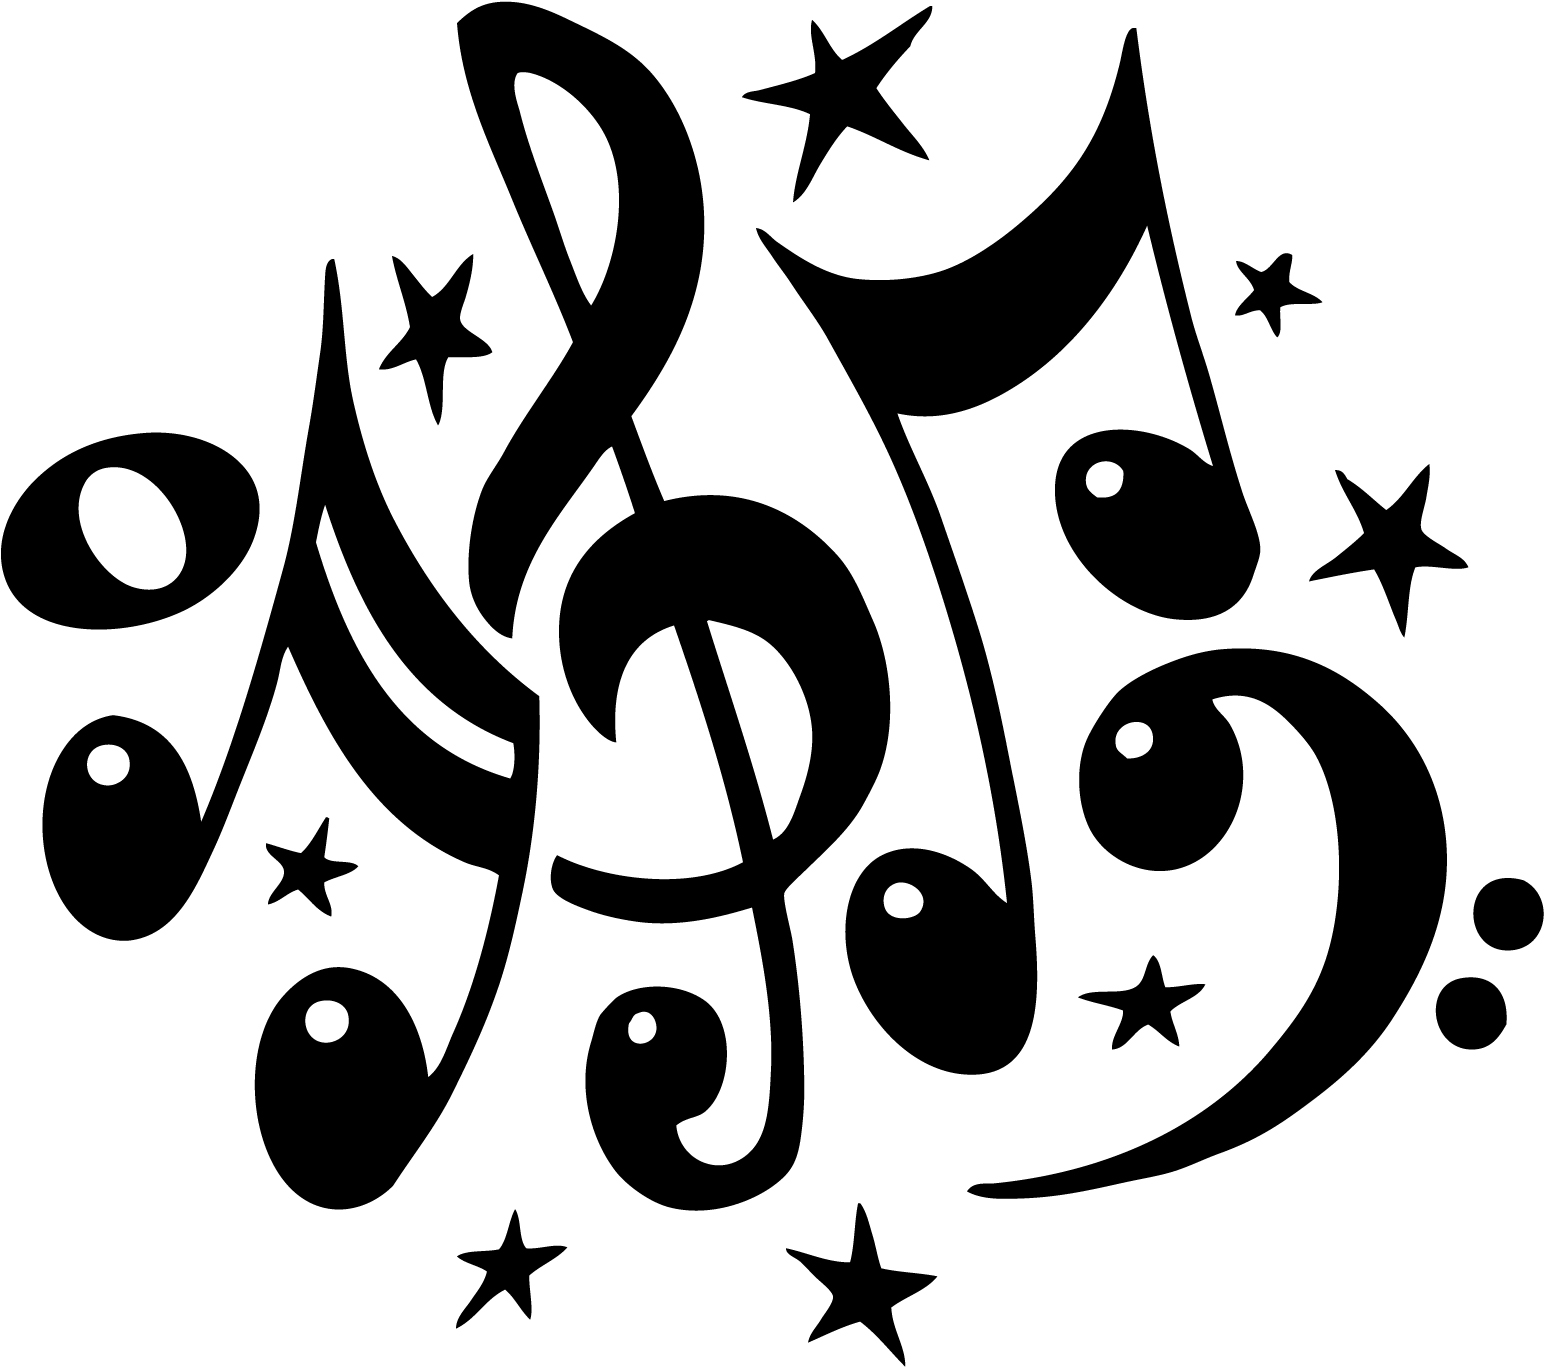 free clipart music note symbol - photo #13